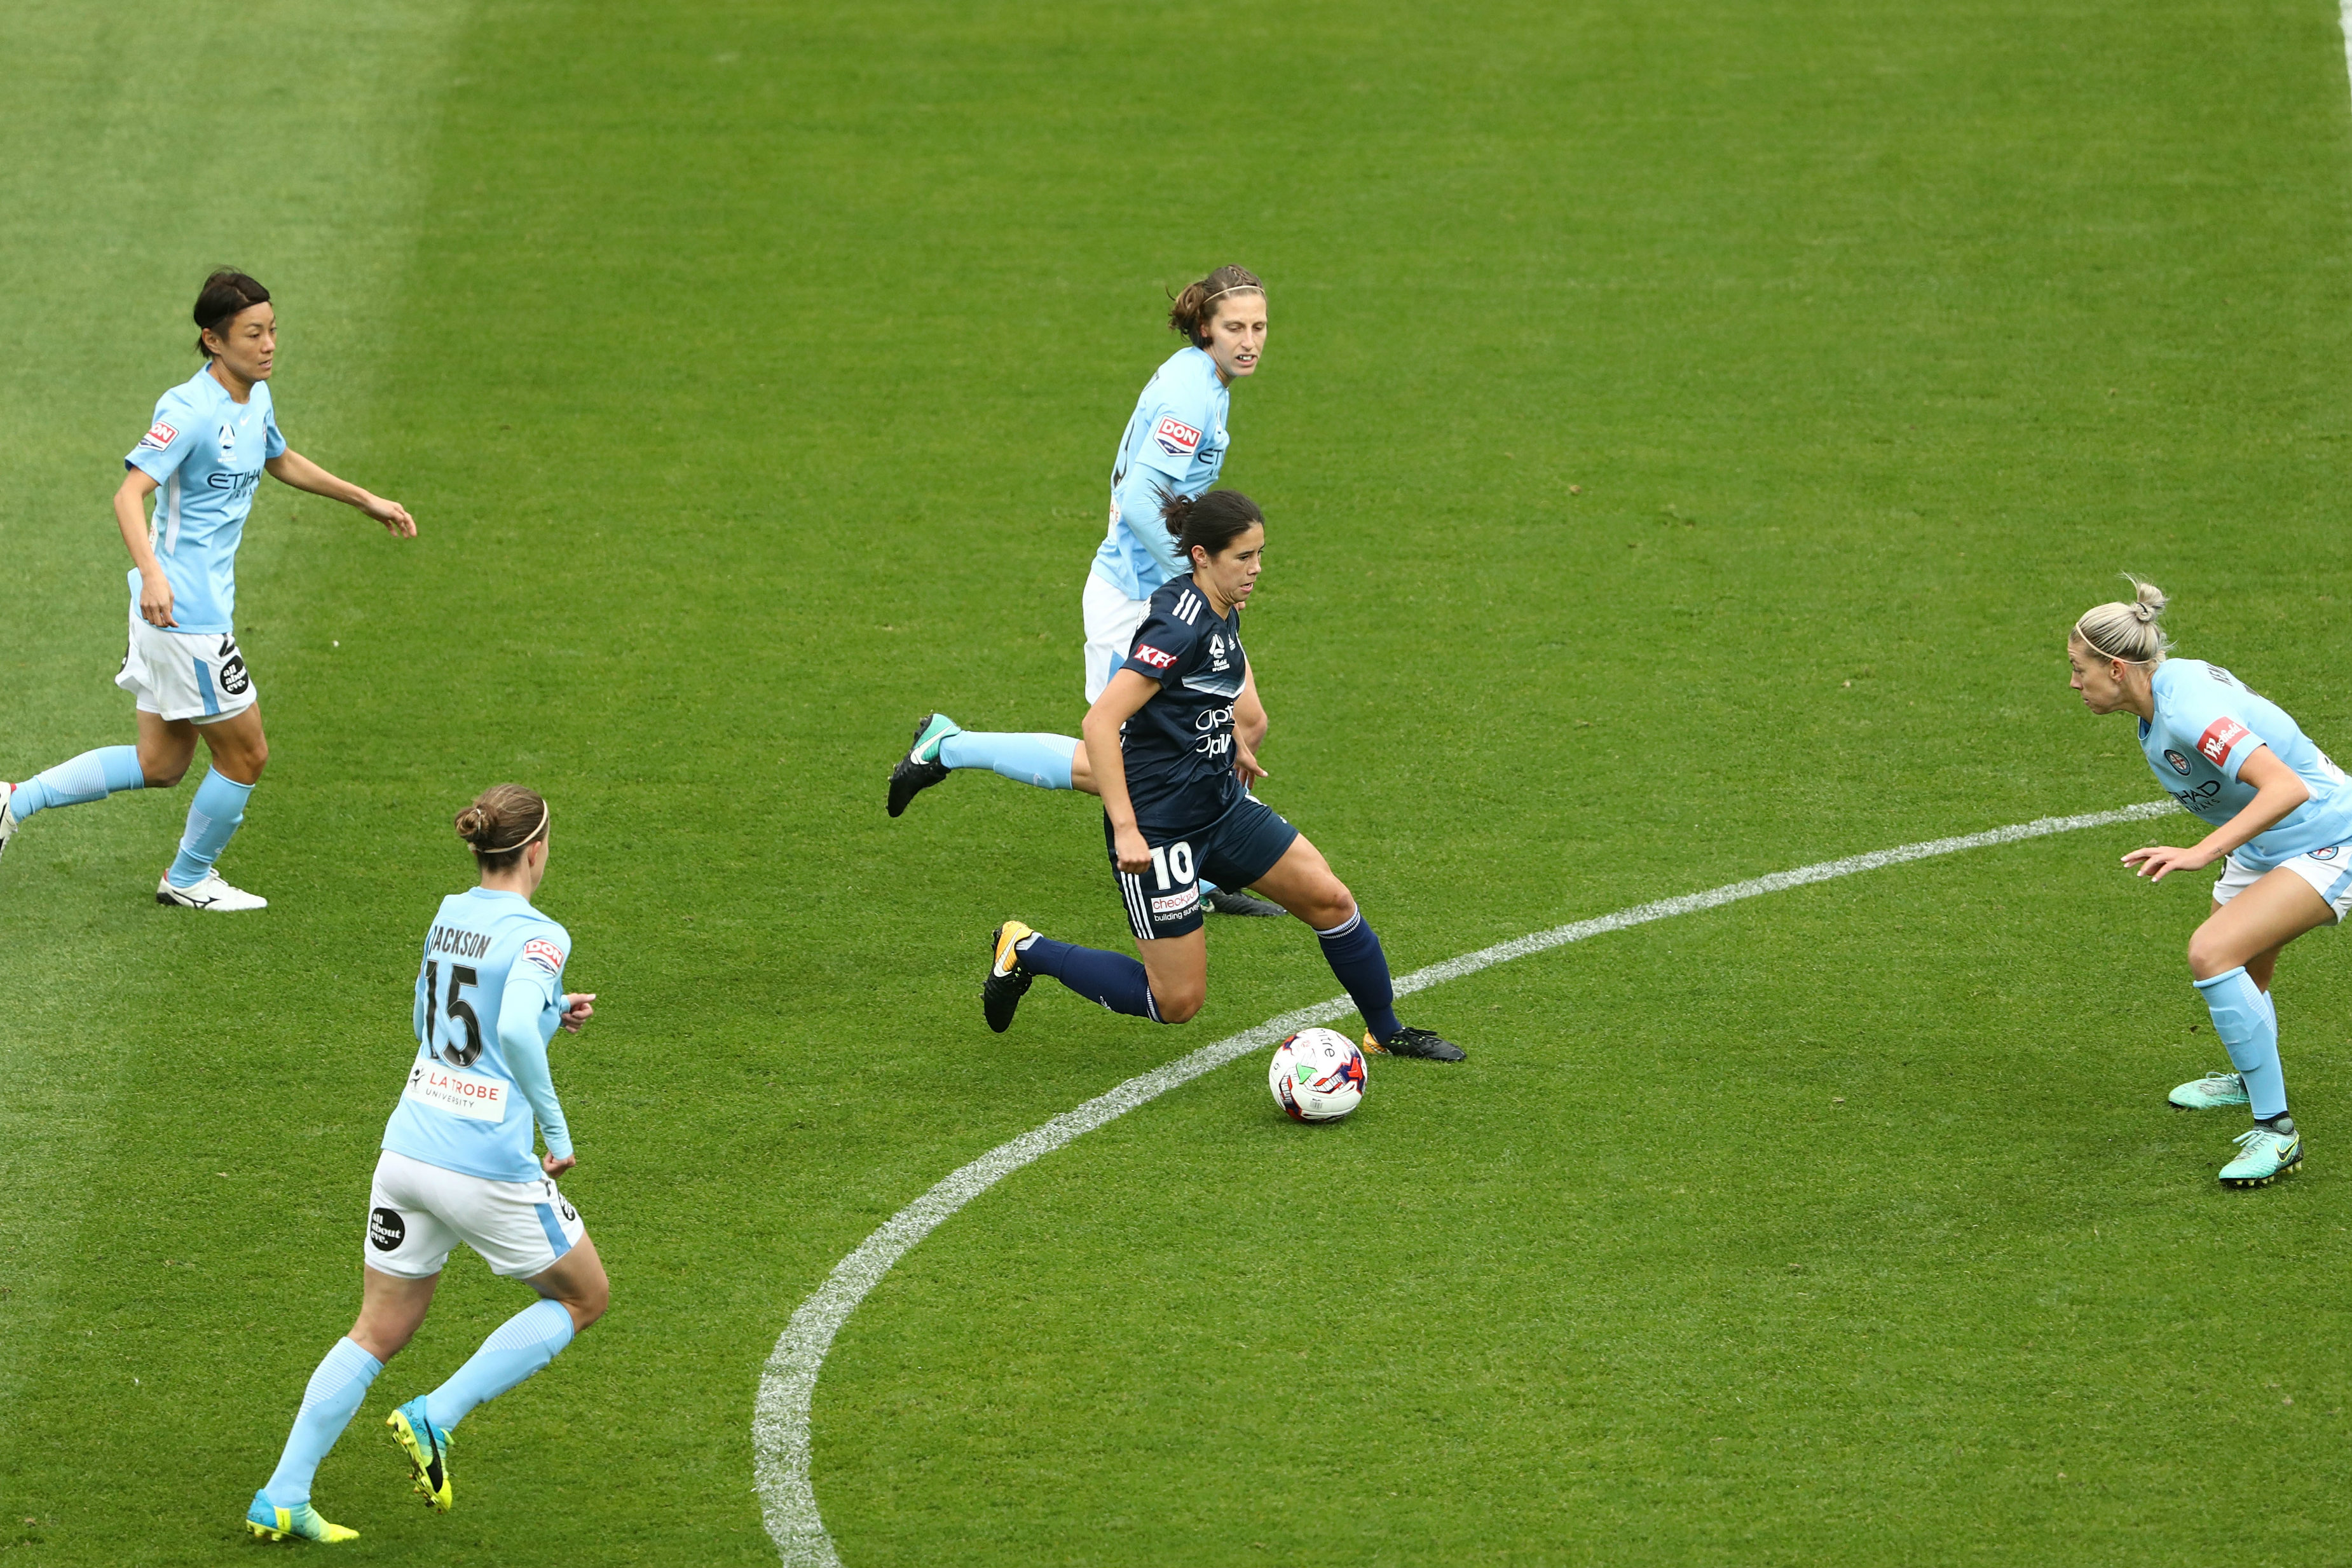 Kyra Cooney-Cross surrounded by four Melbourne City players.